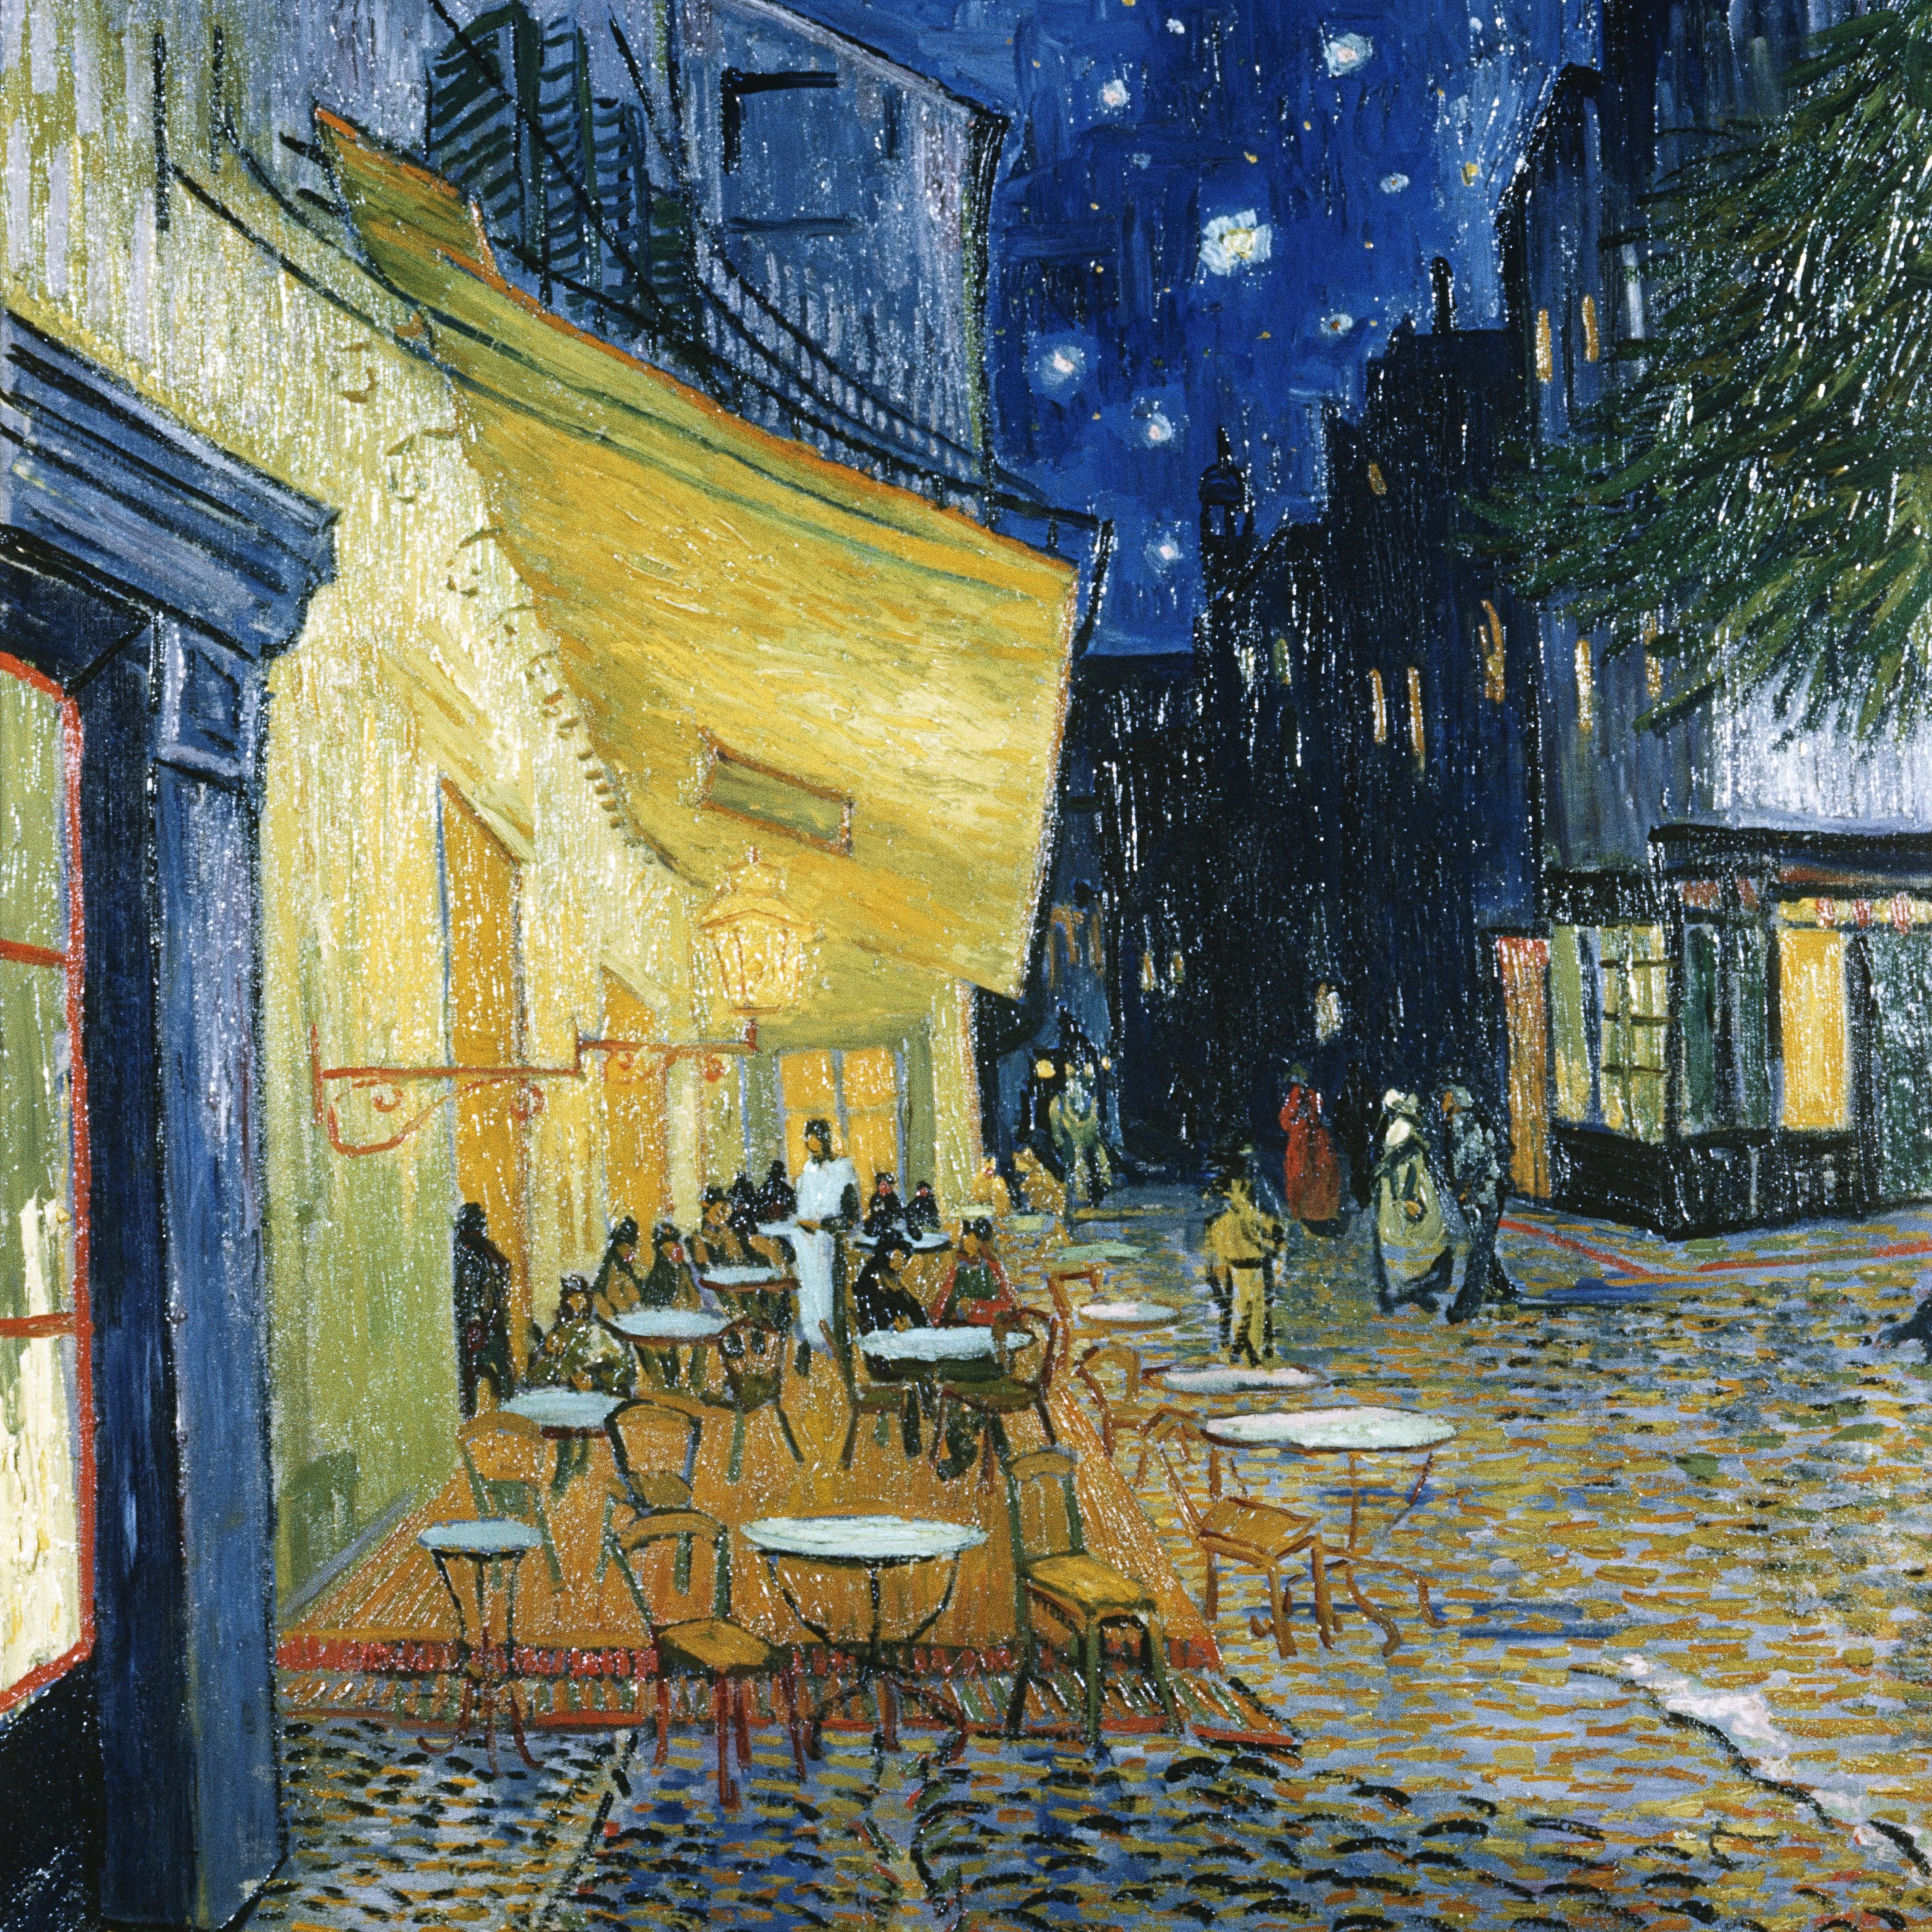 Star-lit sky, yellow awning, empty round tables, and cobbled pavement.